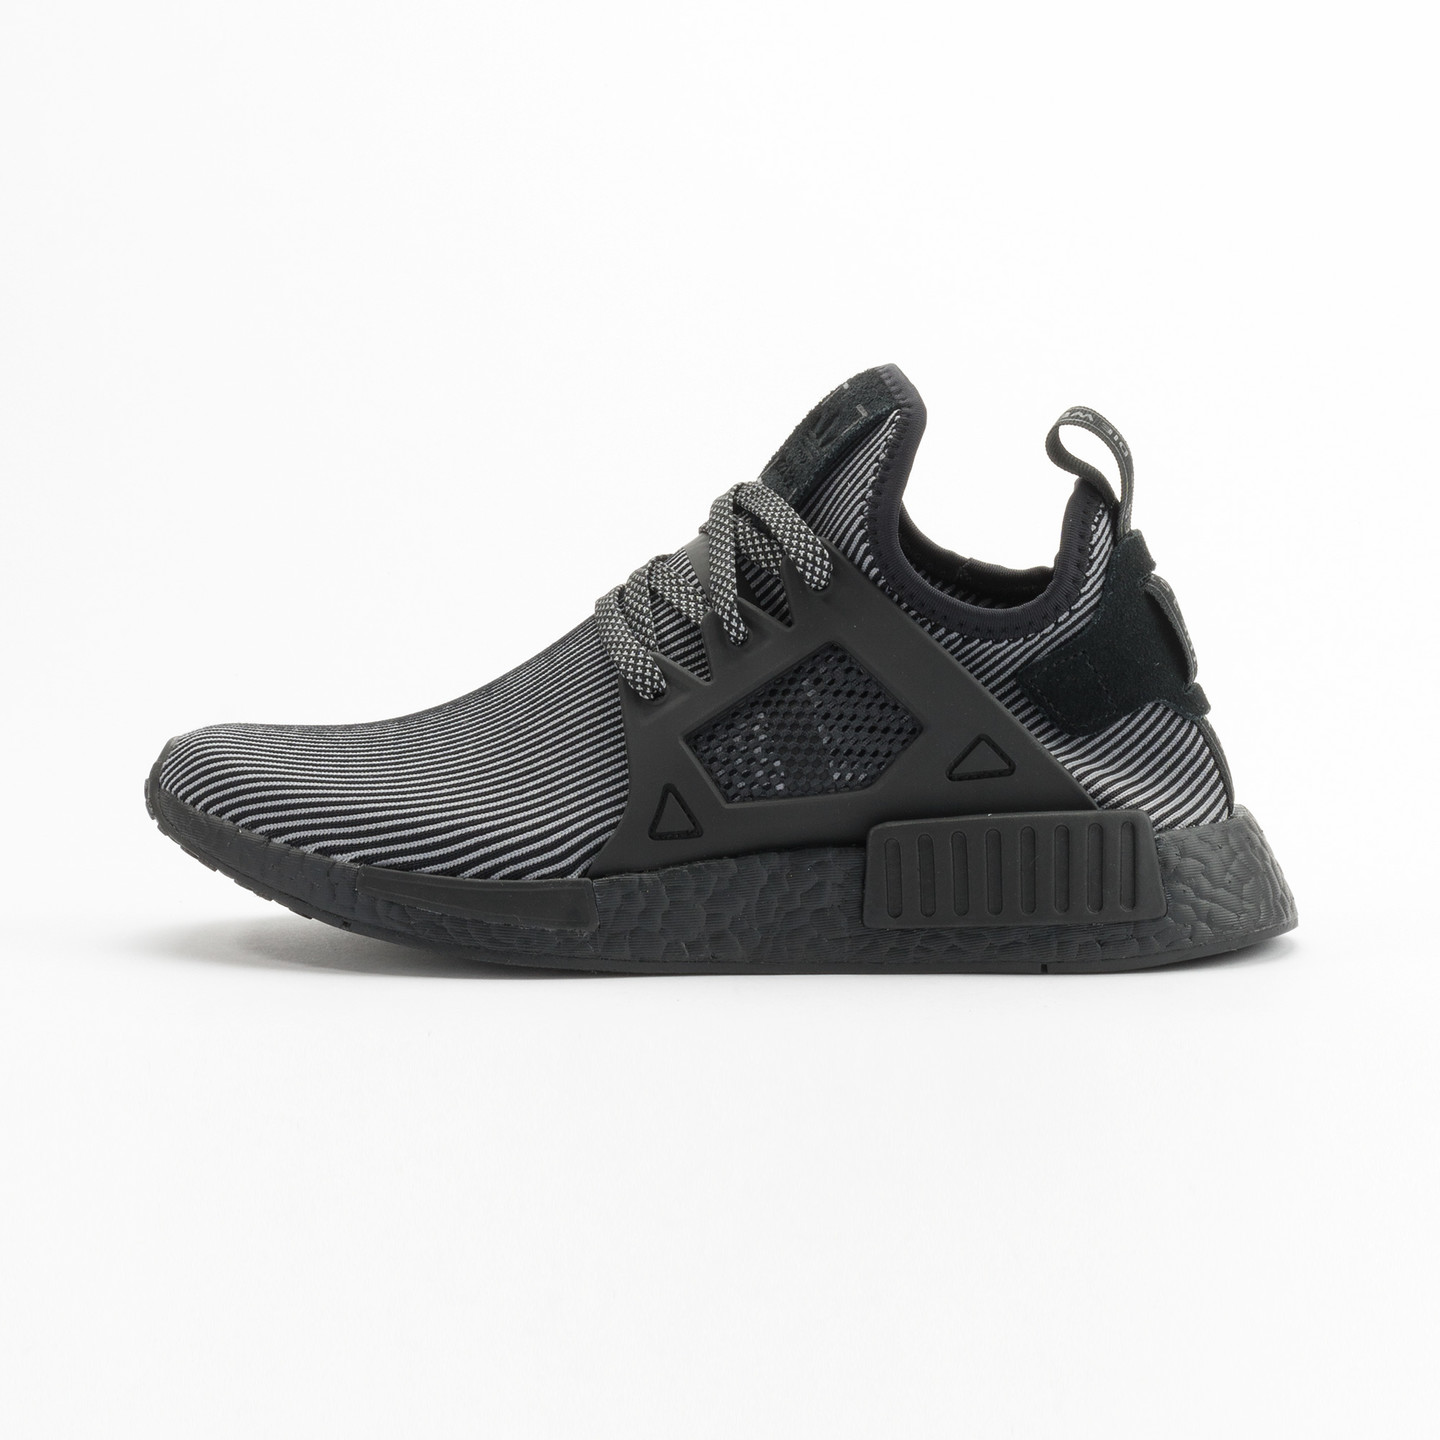 Adidas NMD XR1 Primeknit Core Black / Core Black / Running White S32211-42.66